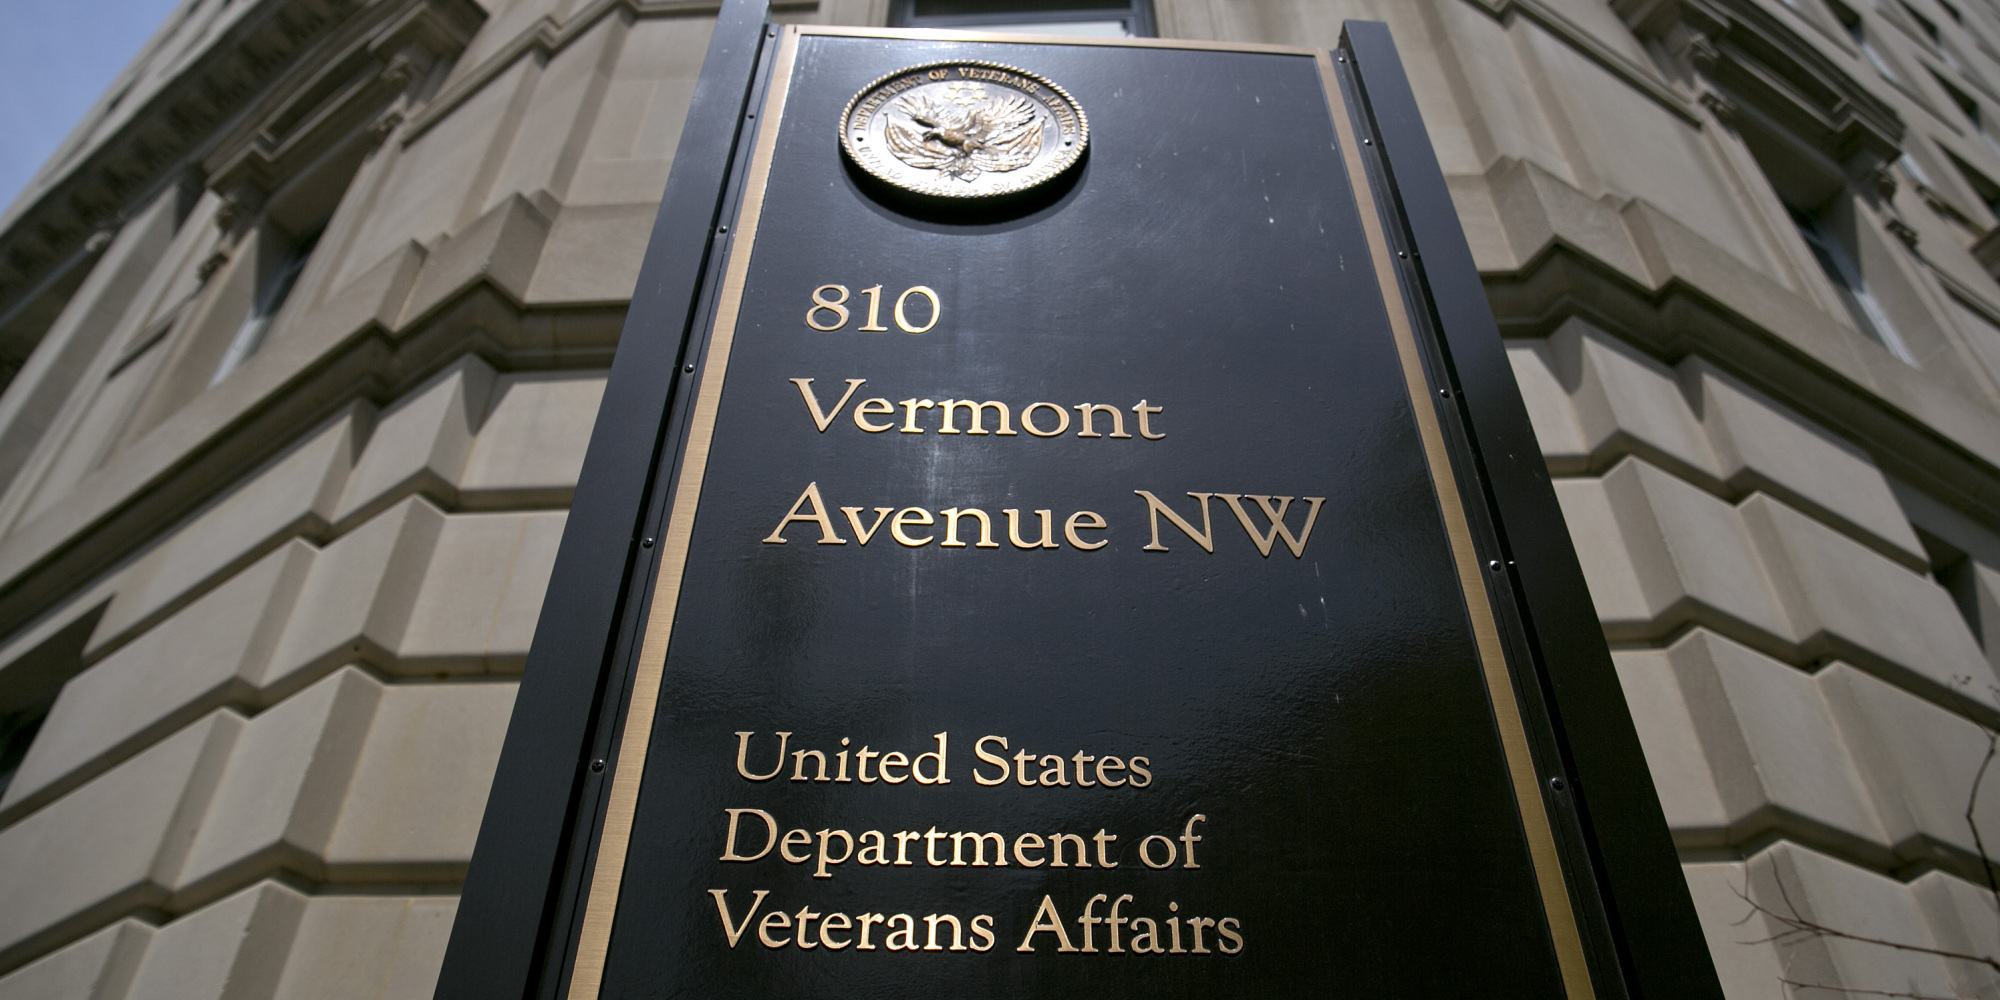 United States Department of Veterans Affairs Today